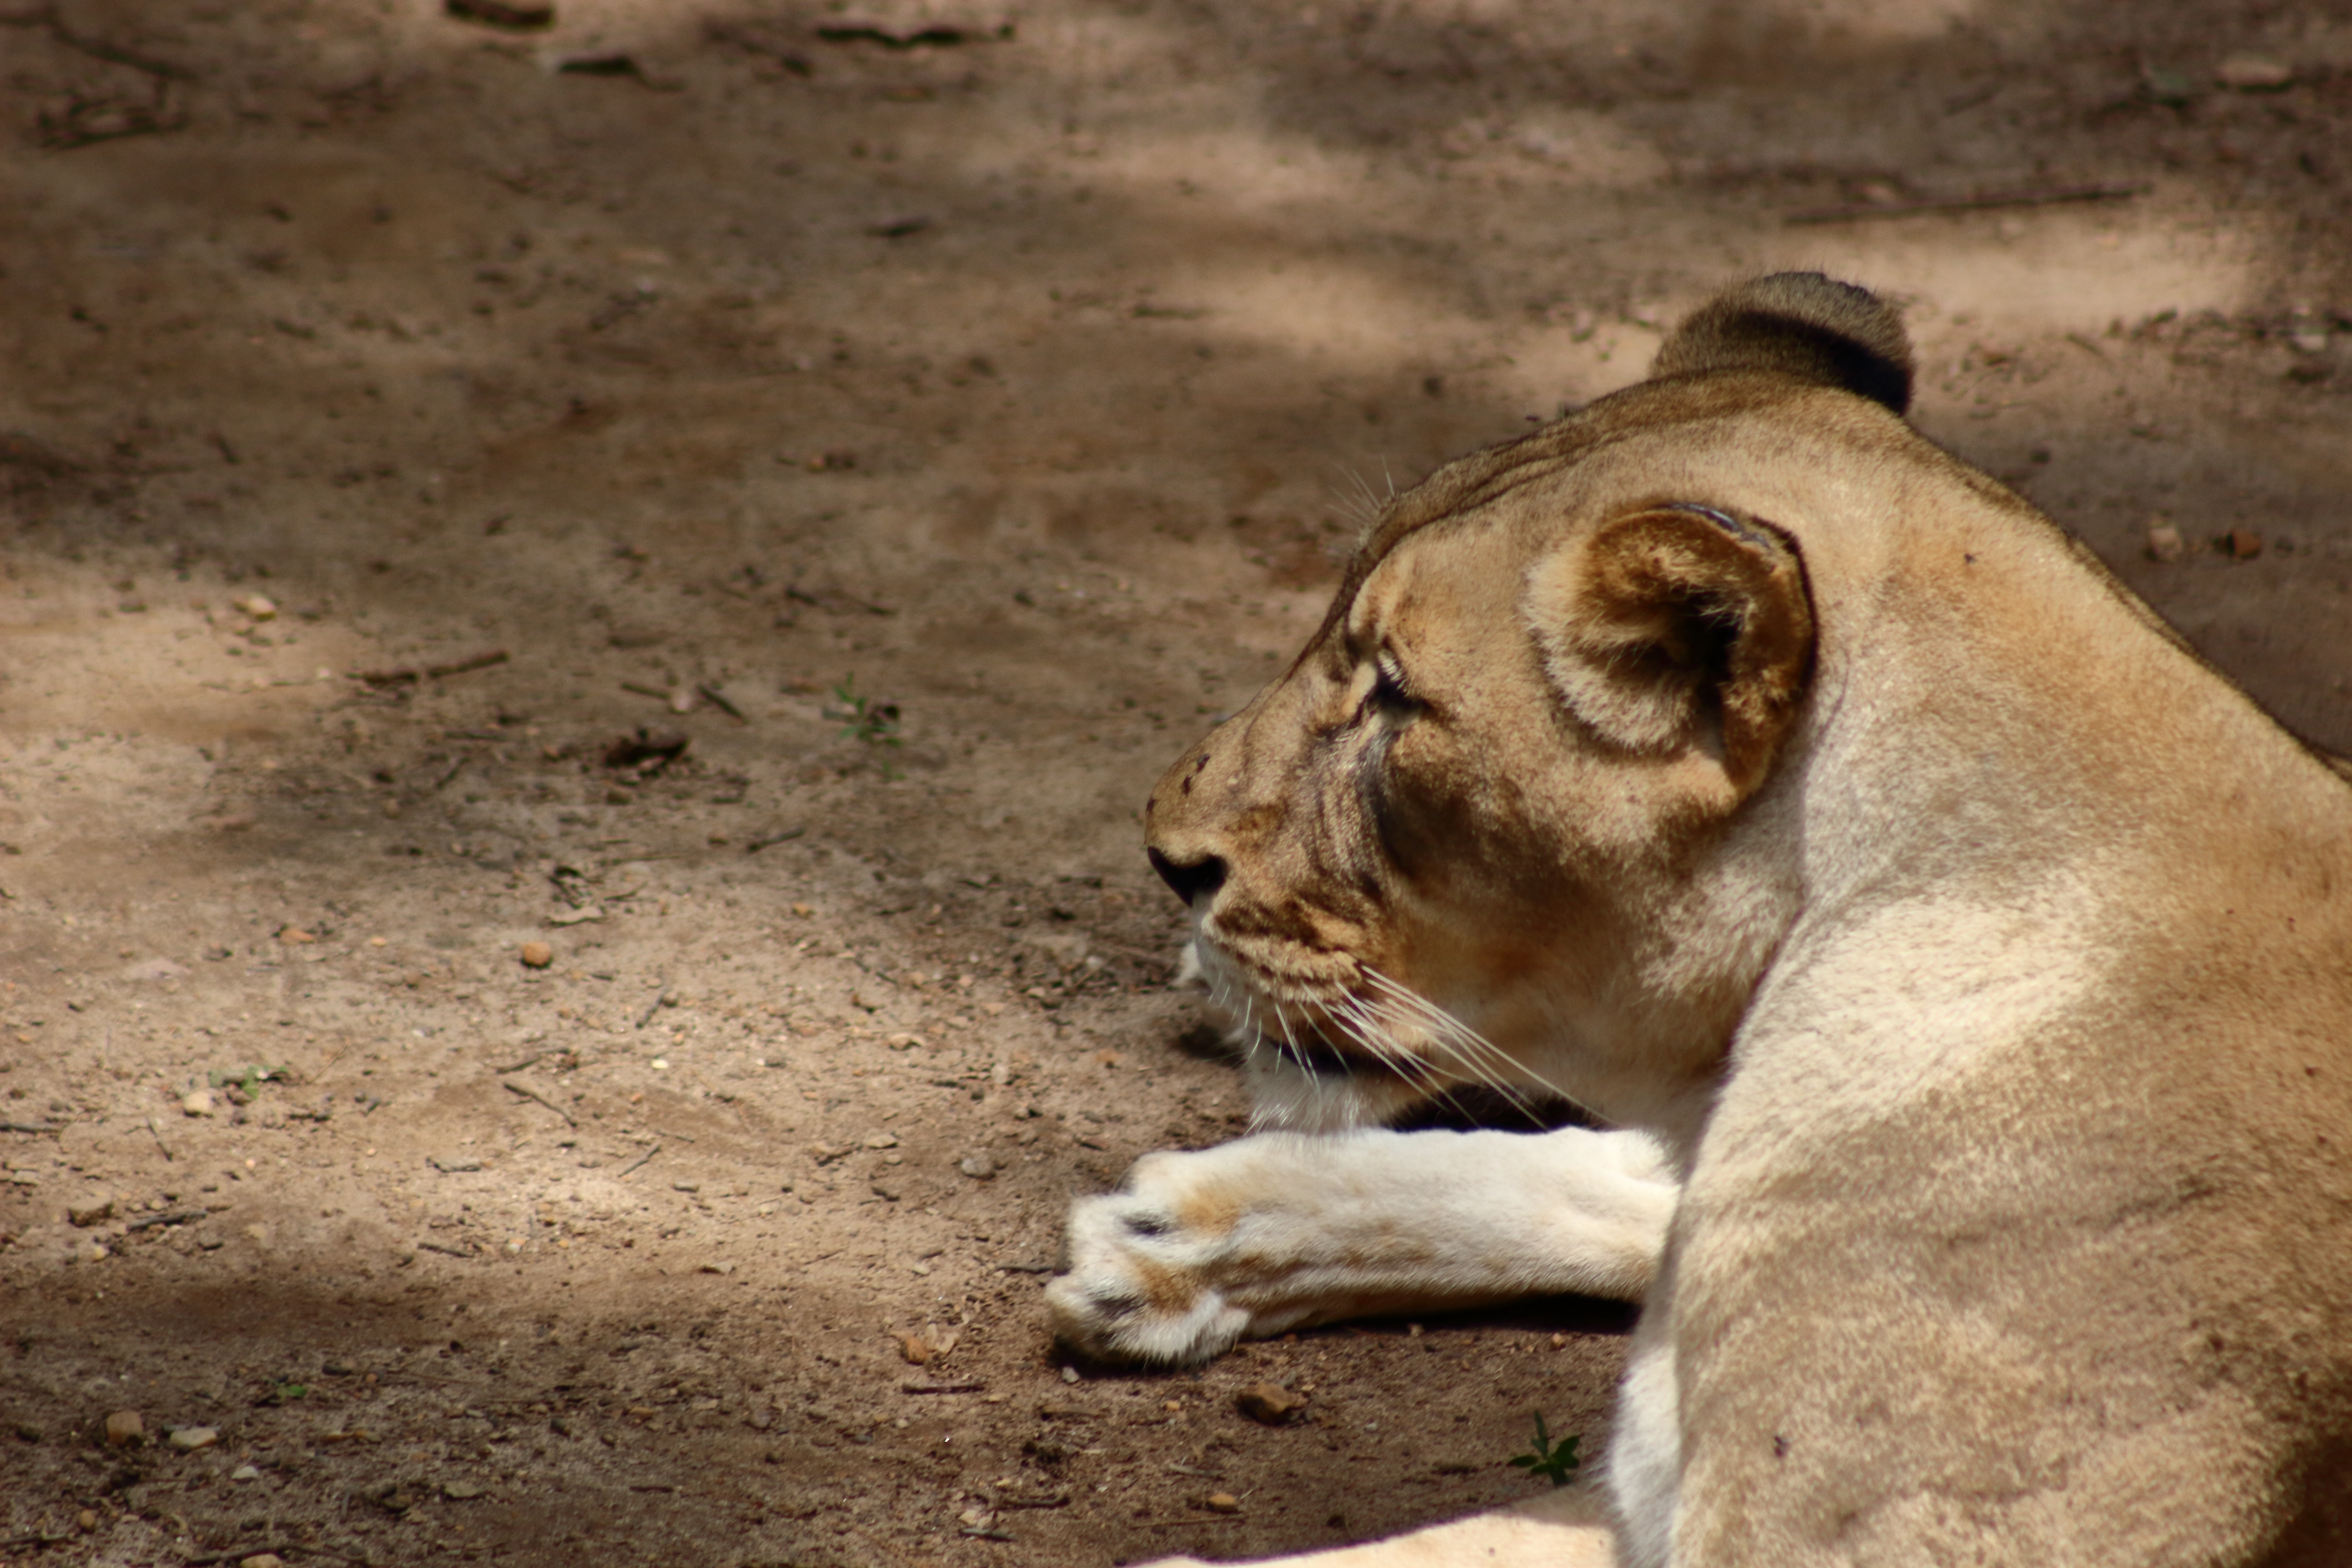 Profile shot of lioness sitting down relaxing on dusty ground